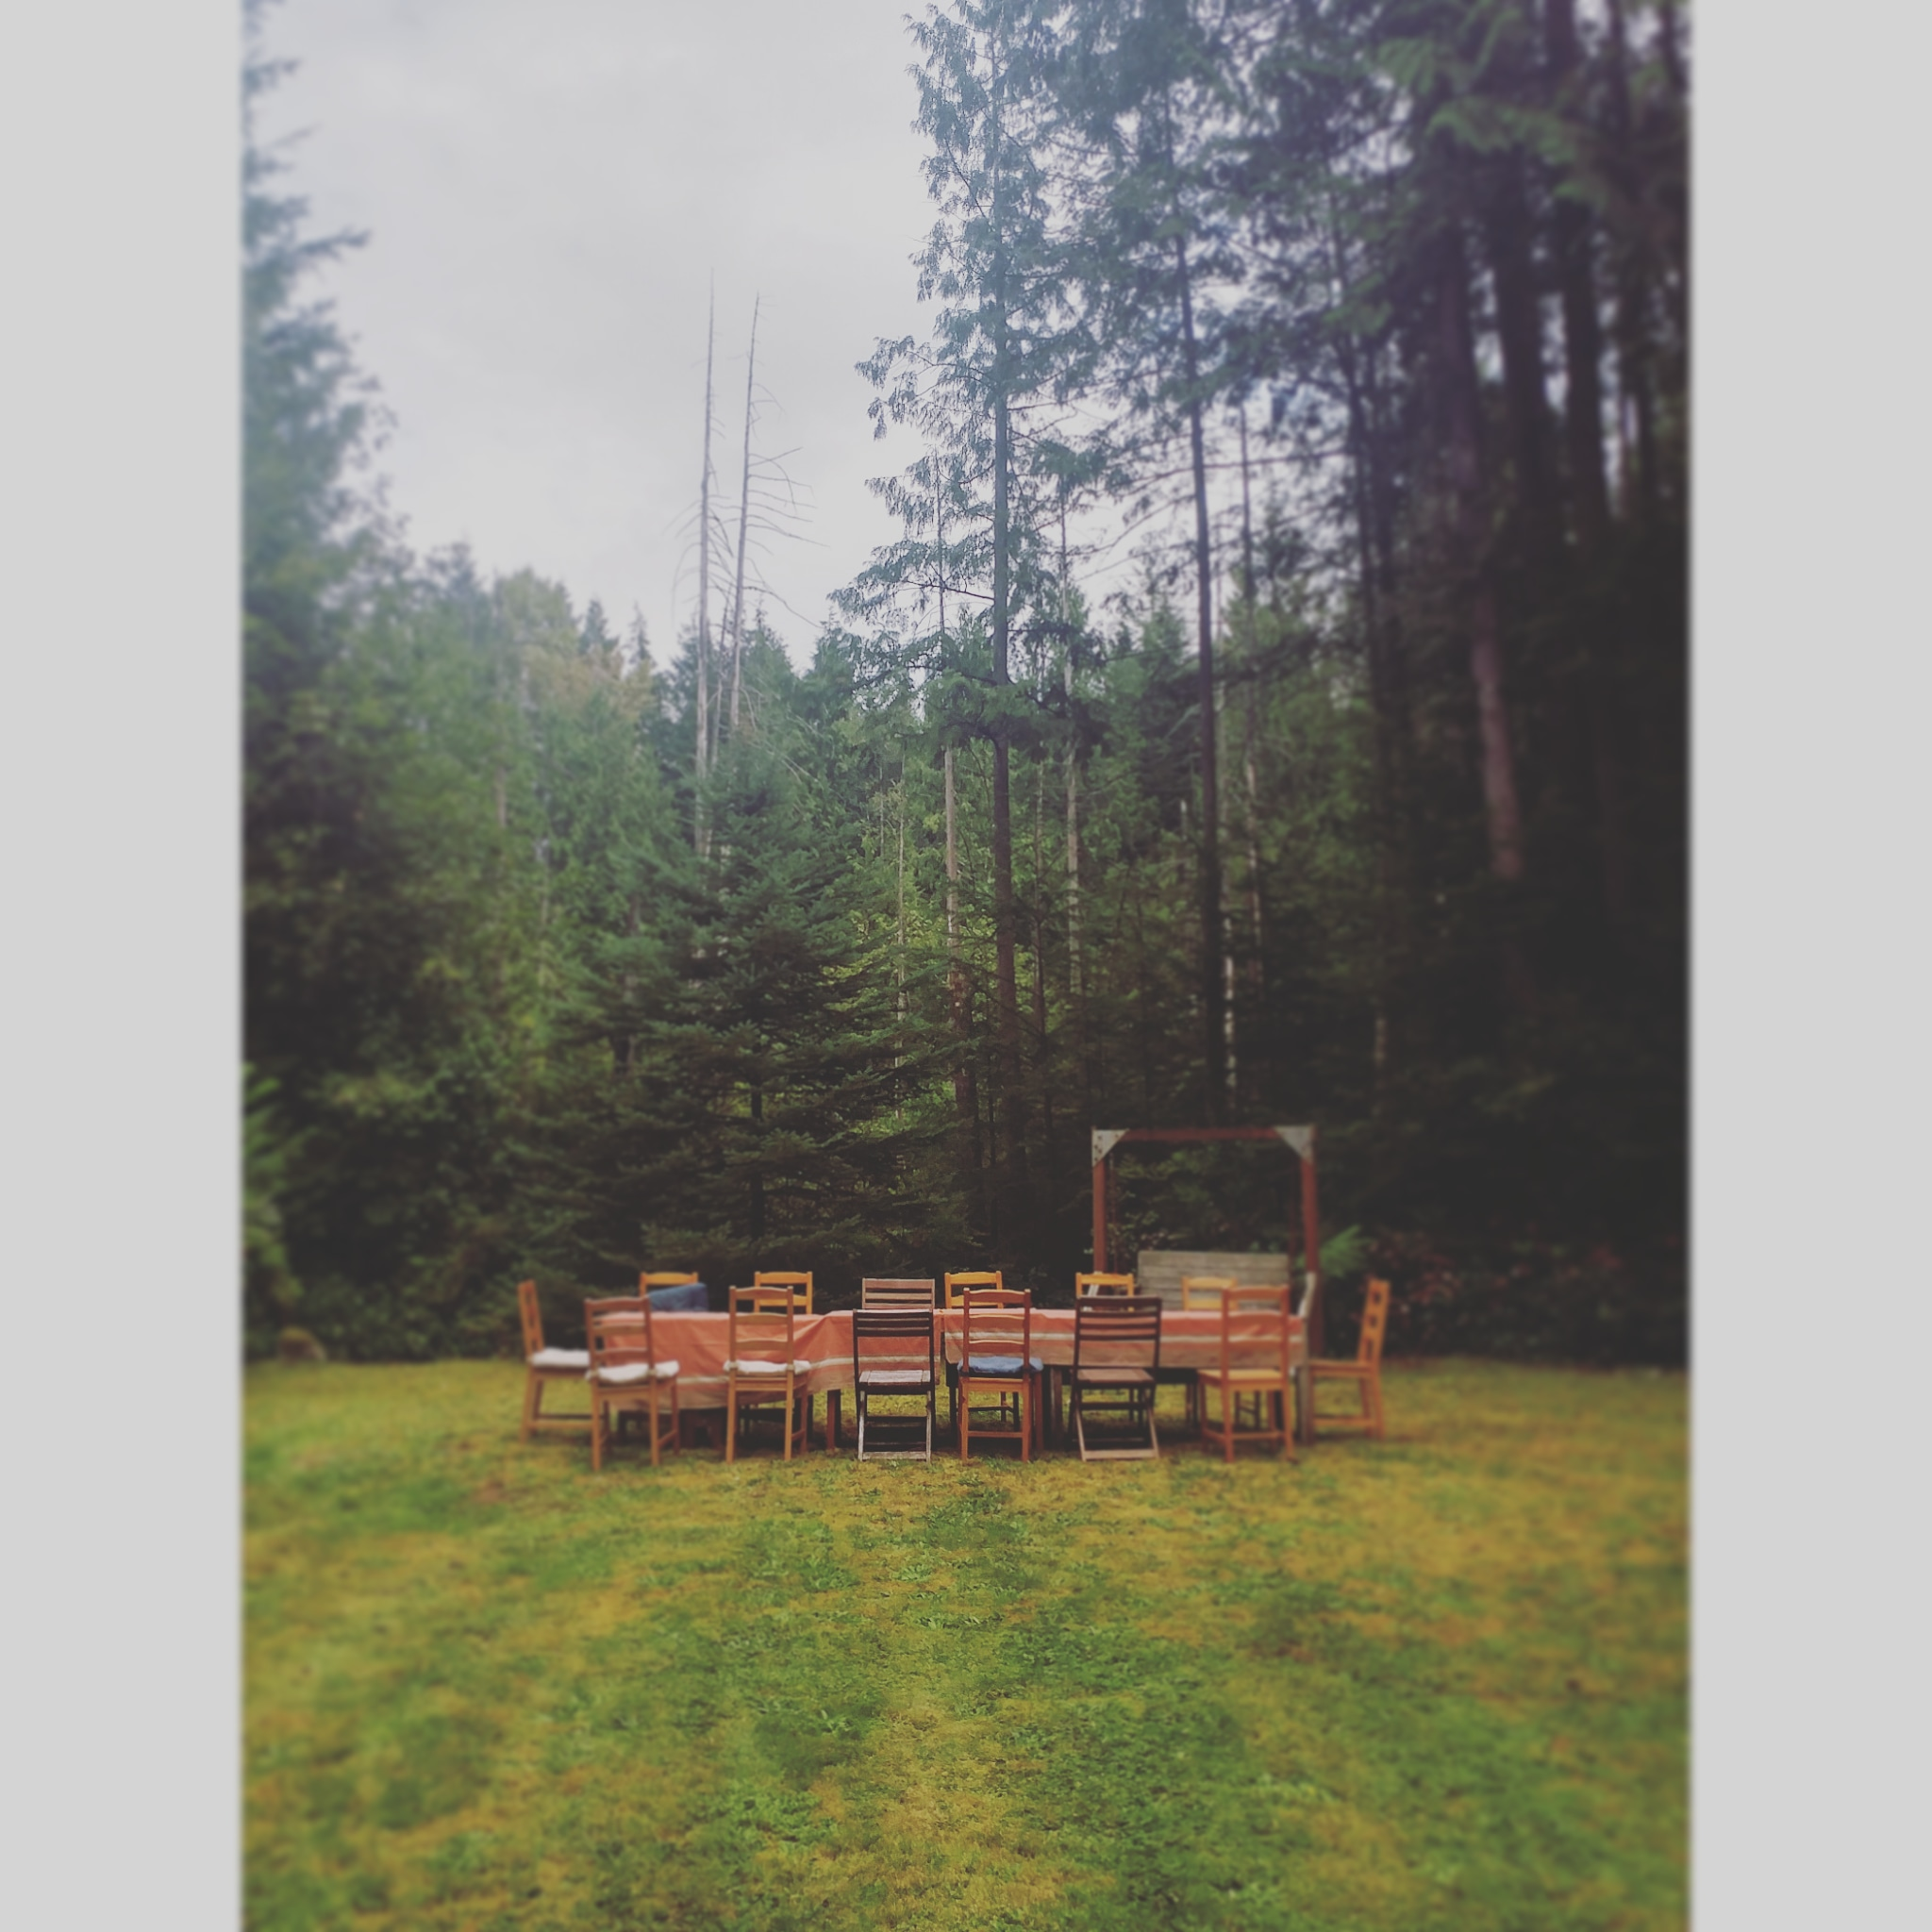 2019 picnic empty chairs.jpg